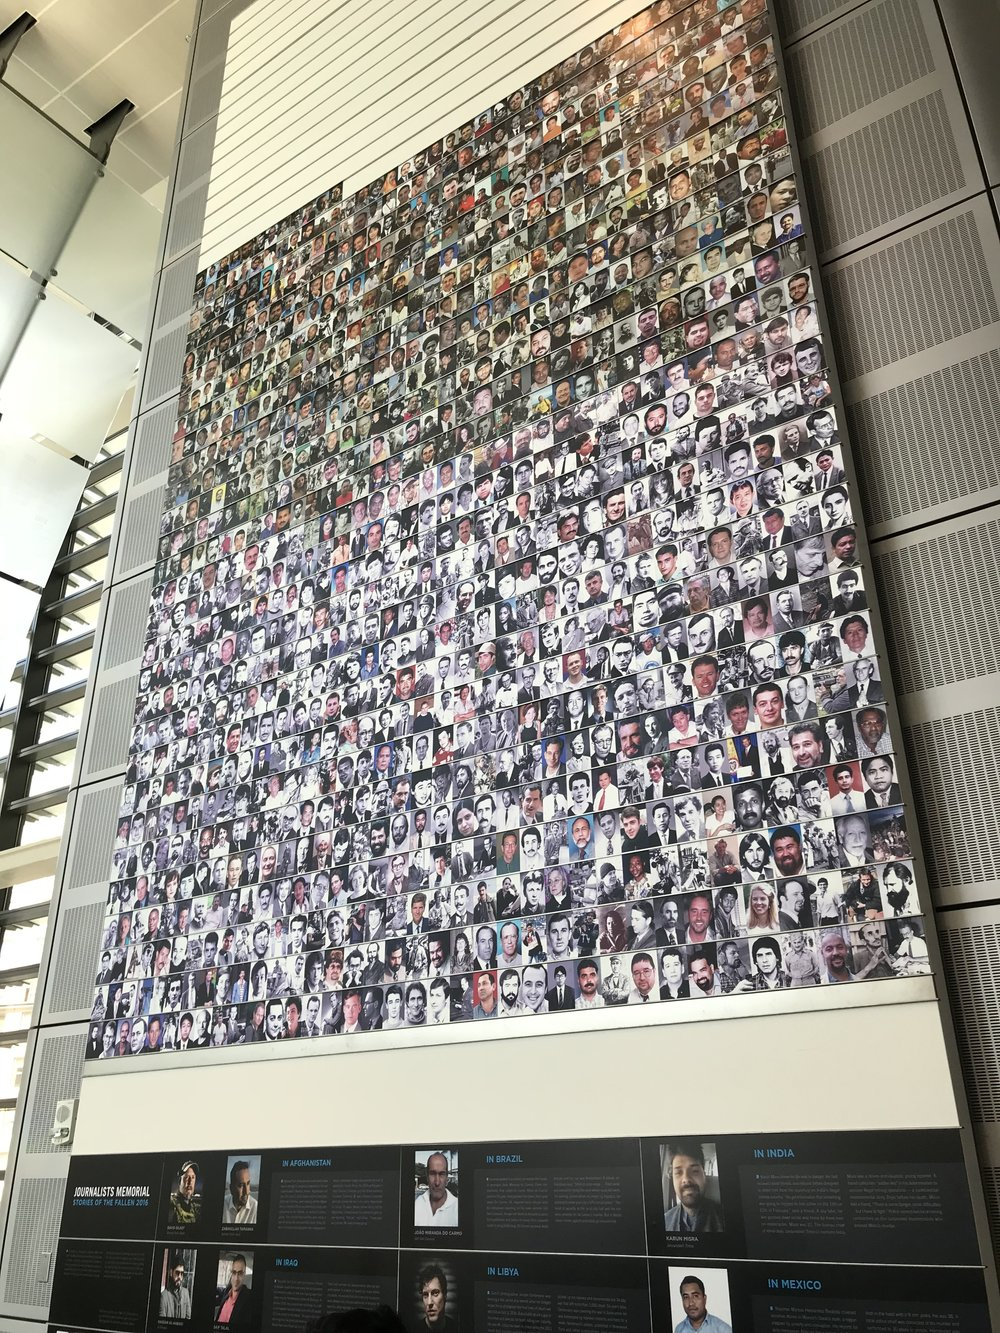 A sad testament to the danger many journalists face in trying to get the story to bring back to the world. These are all those who have died while on the job.